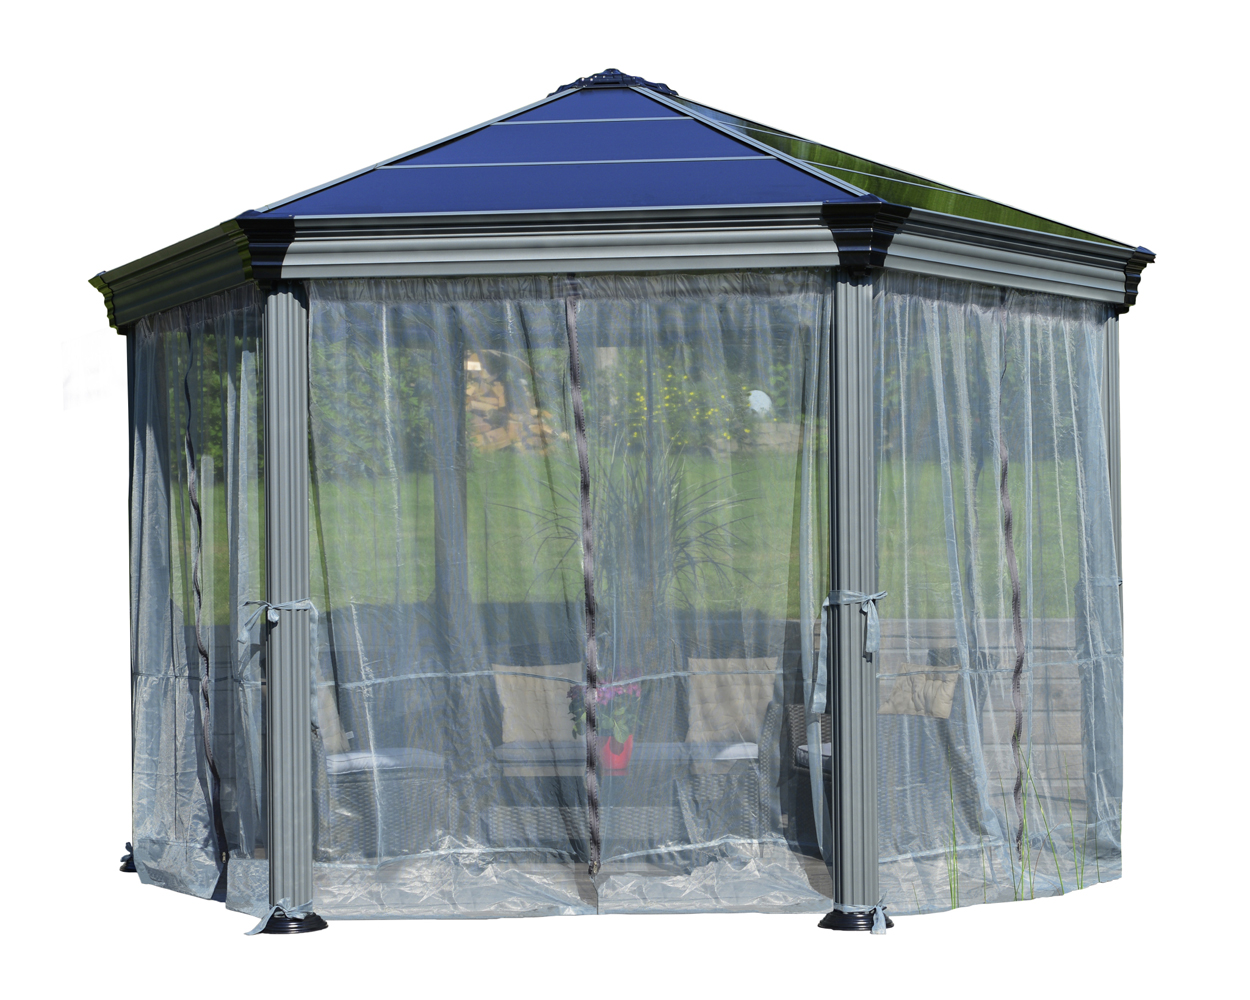 Roma Gazebo Netting set - 6 Piece